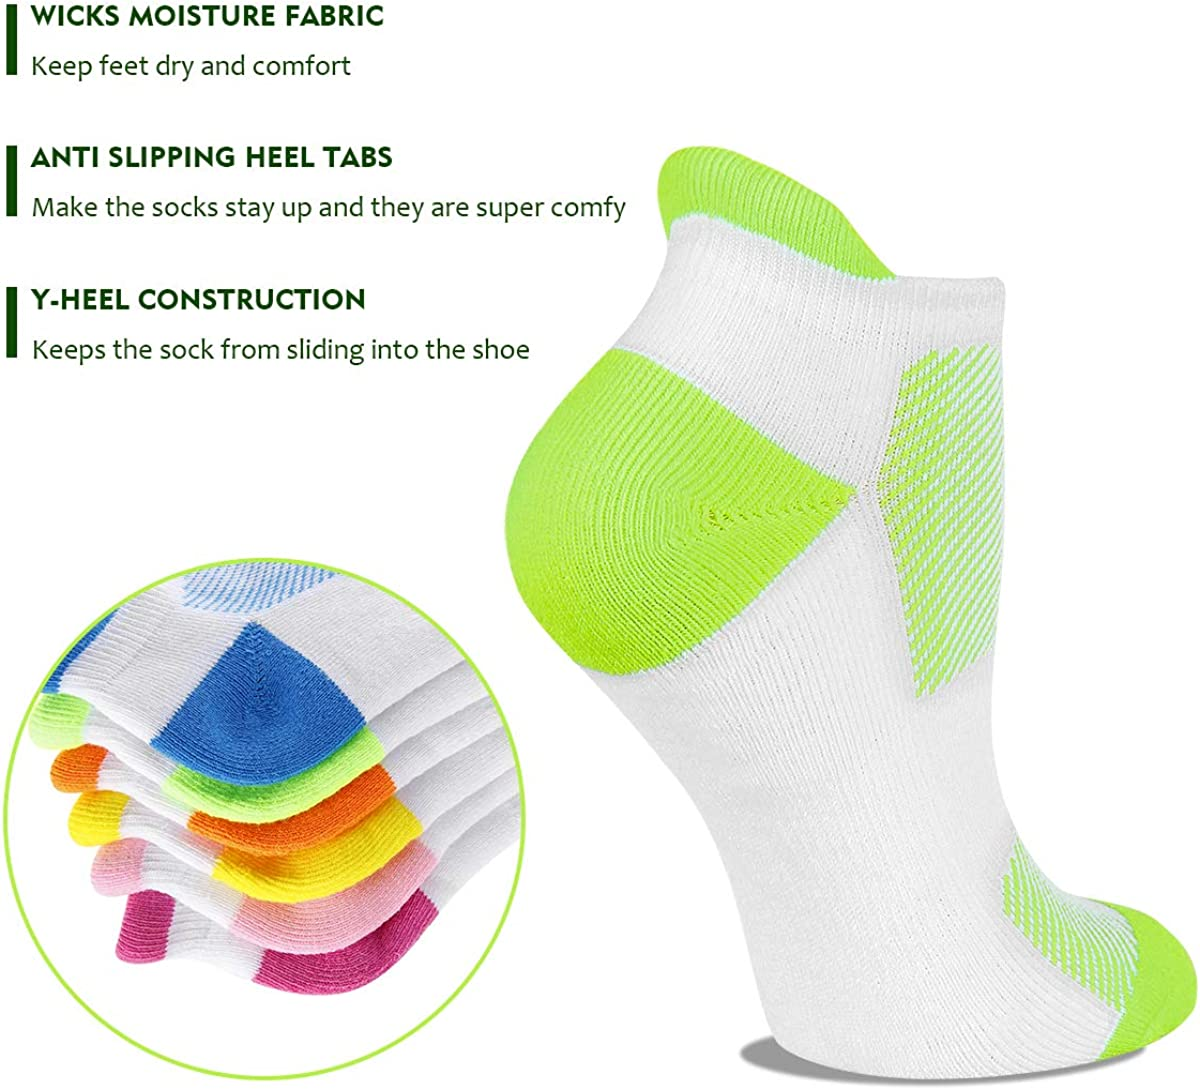 Heatuff Womens Low Cut Ankle Athletic Socks Cushioned Running Performance Breathable Tab Sock 6 Pack: Clothing